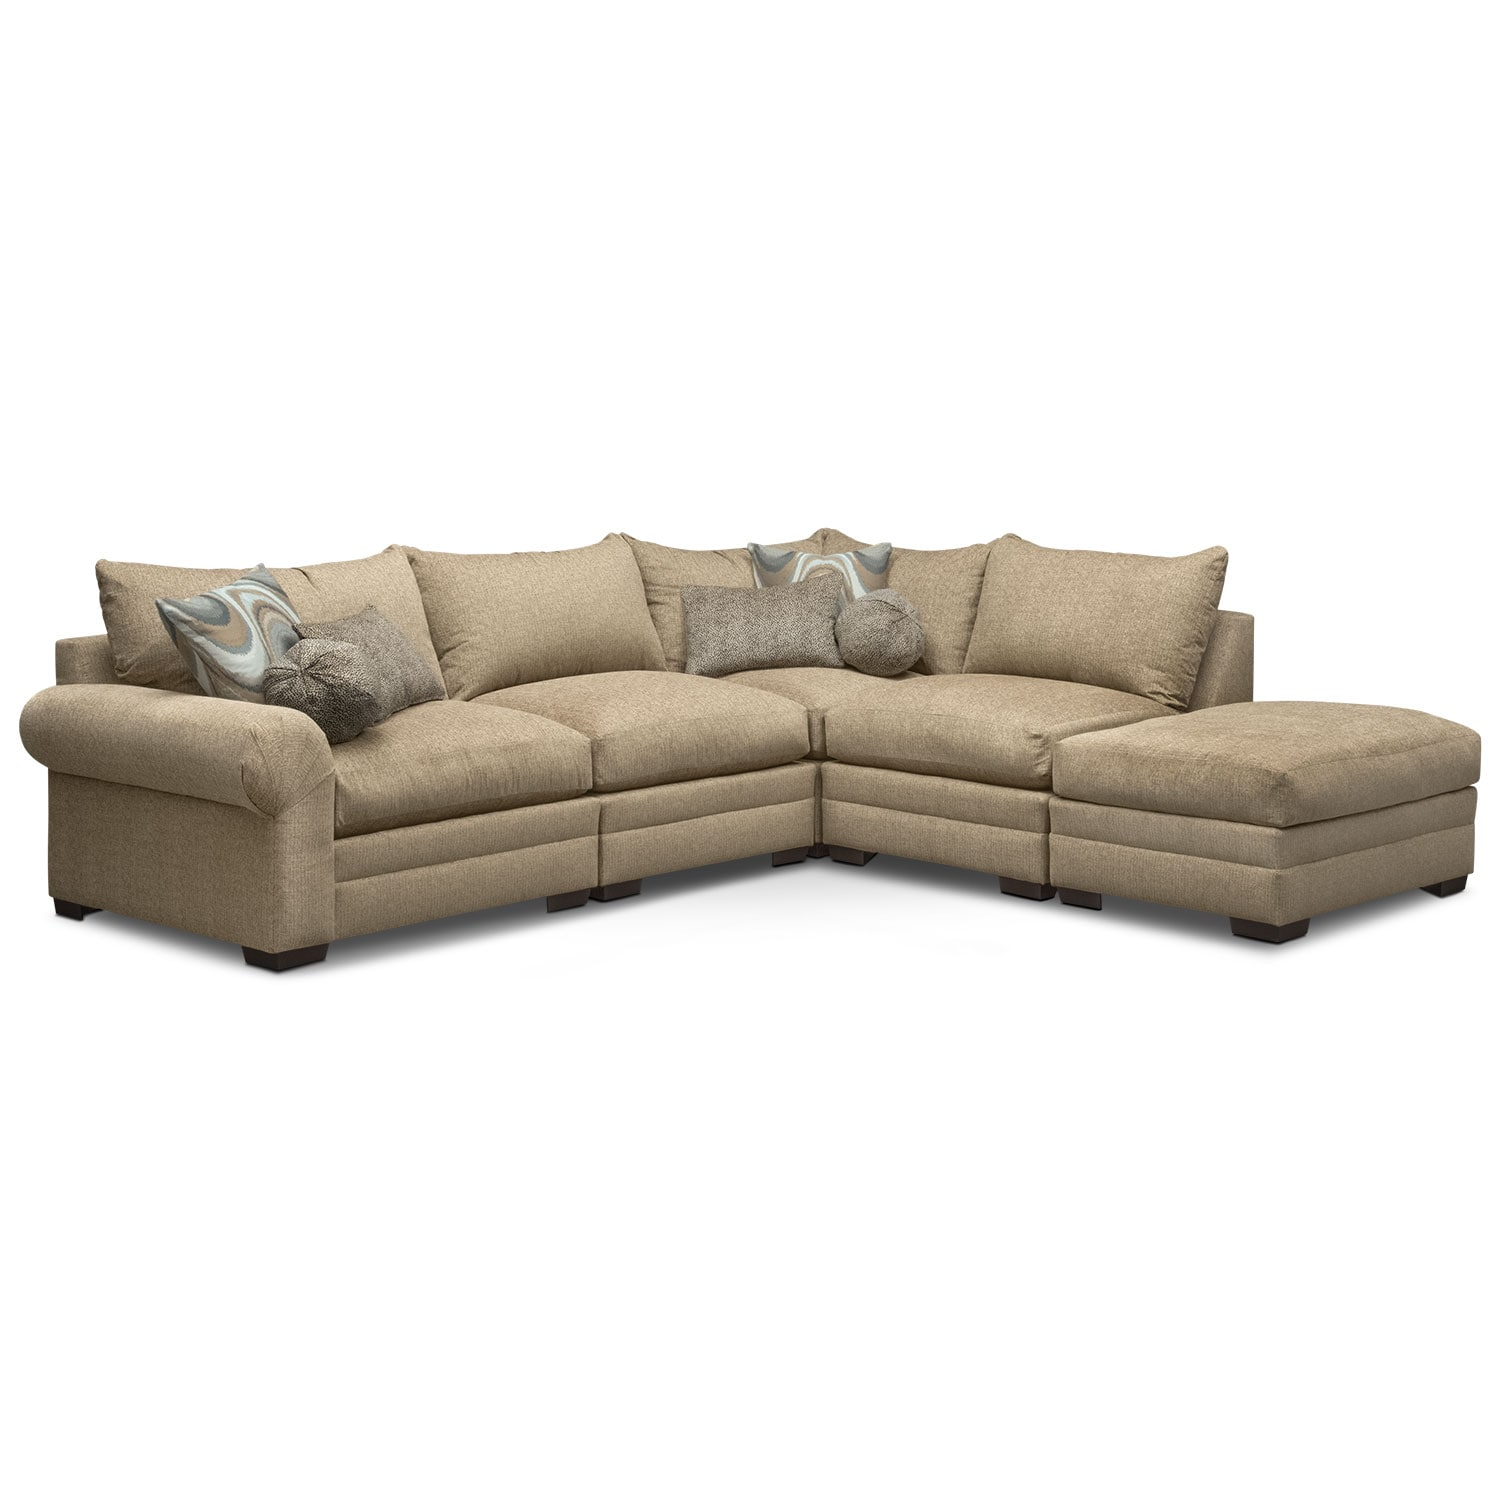 Wilshire 5-Piece Right-Facing Sectional - Taupe